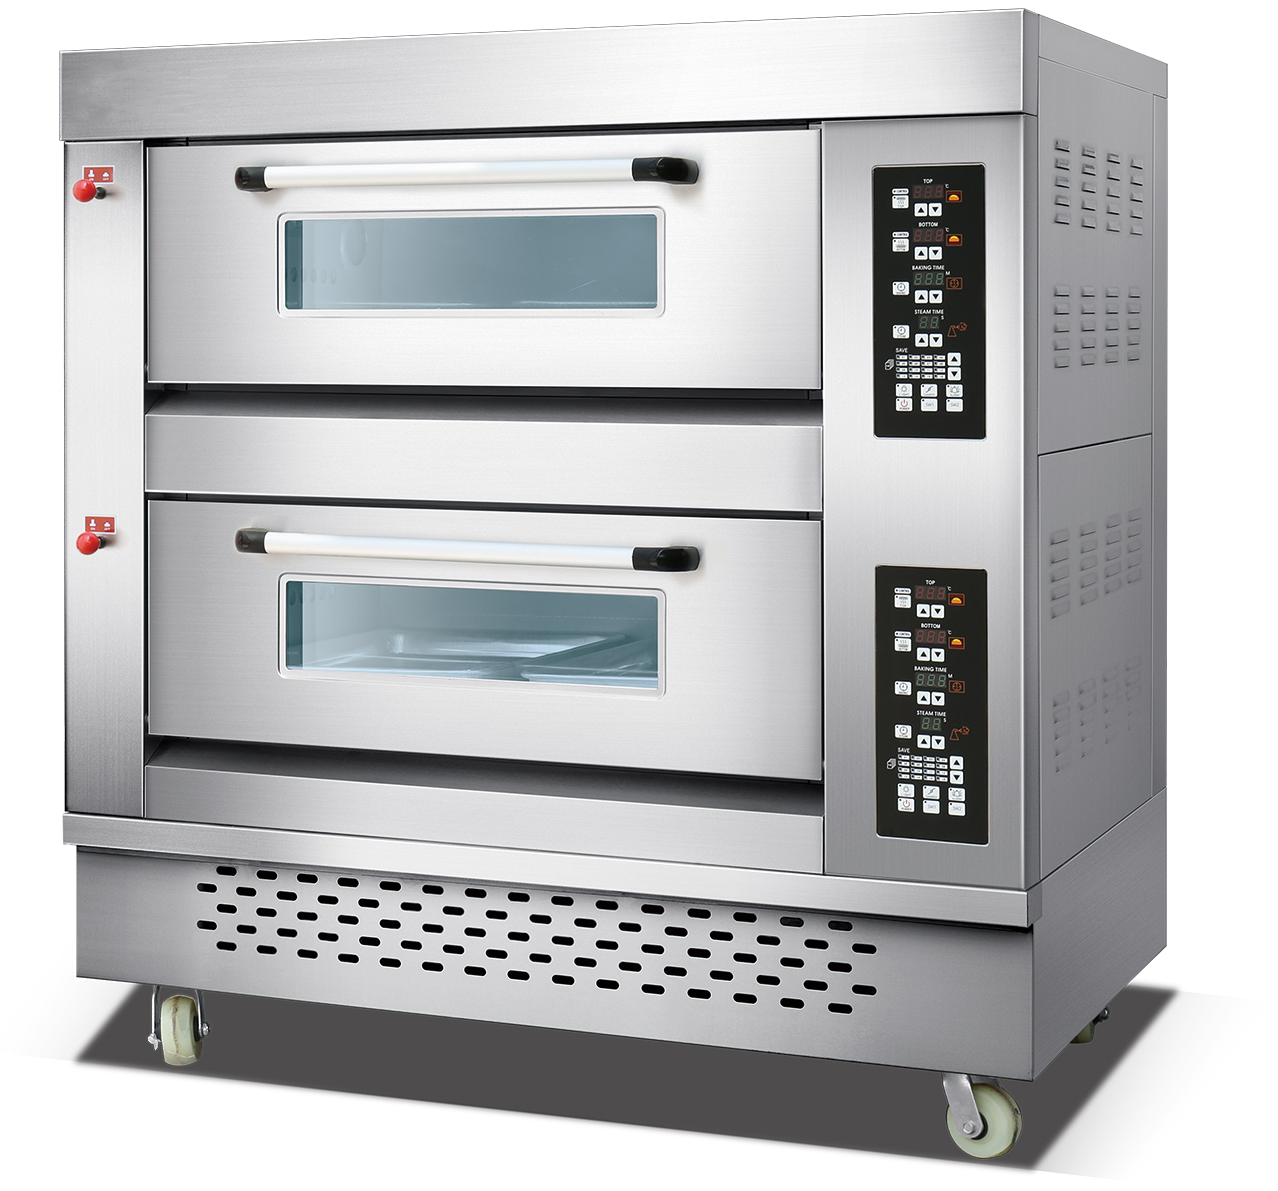 High quality commercial bread deck oven high-speed toaster oven 3 deck 6 trays deck baking oven